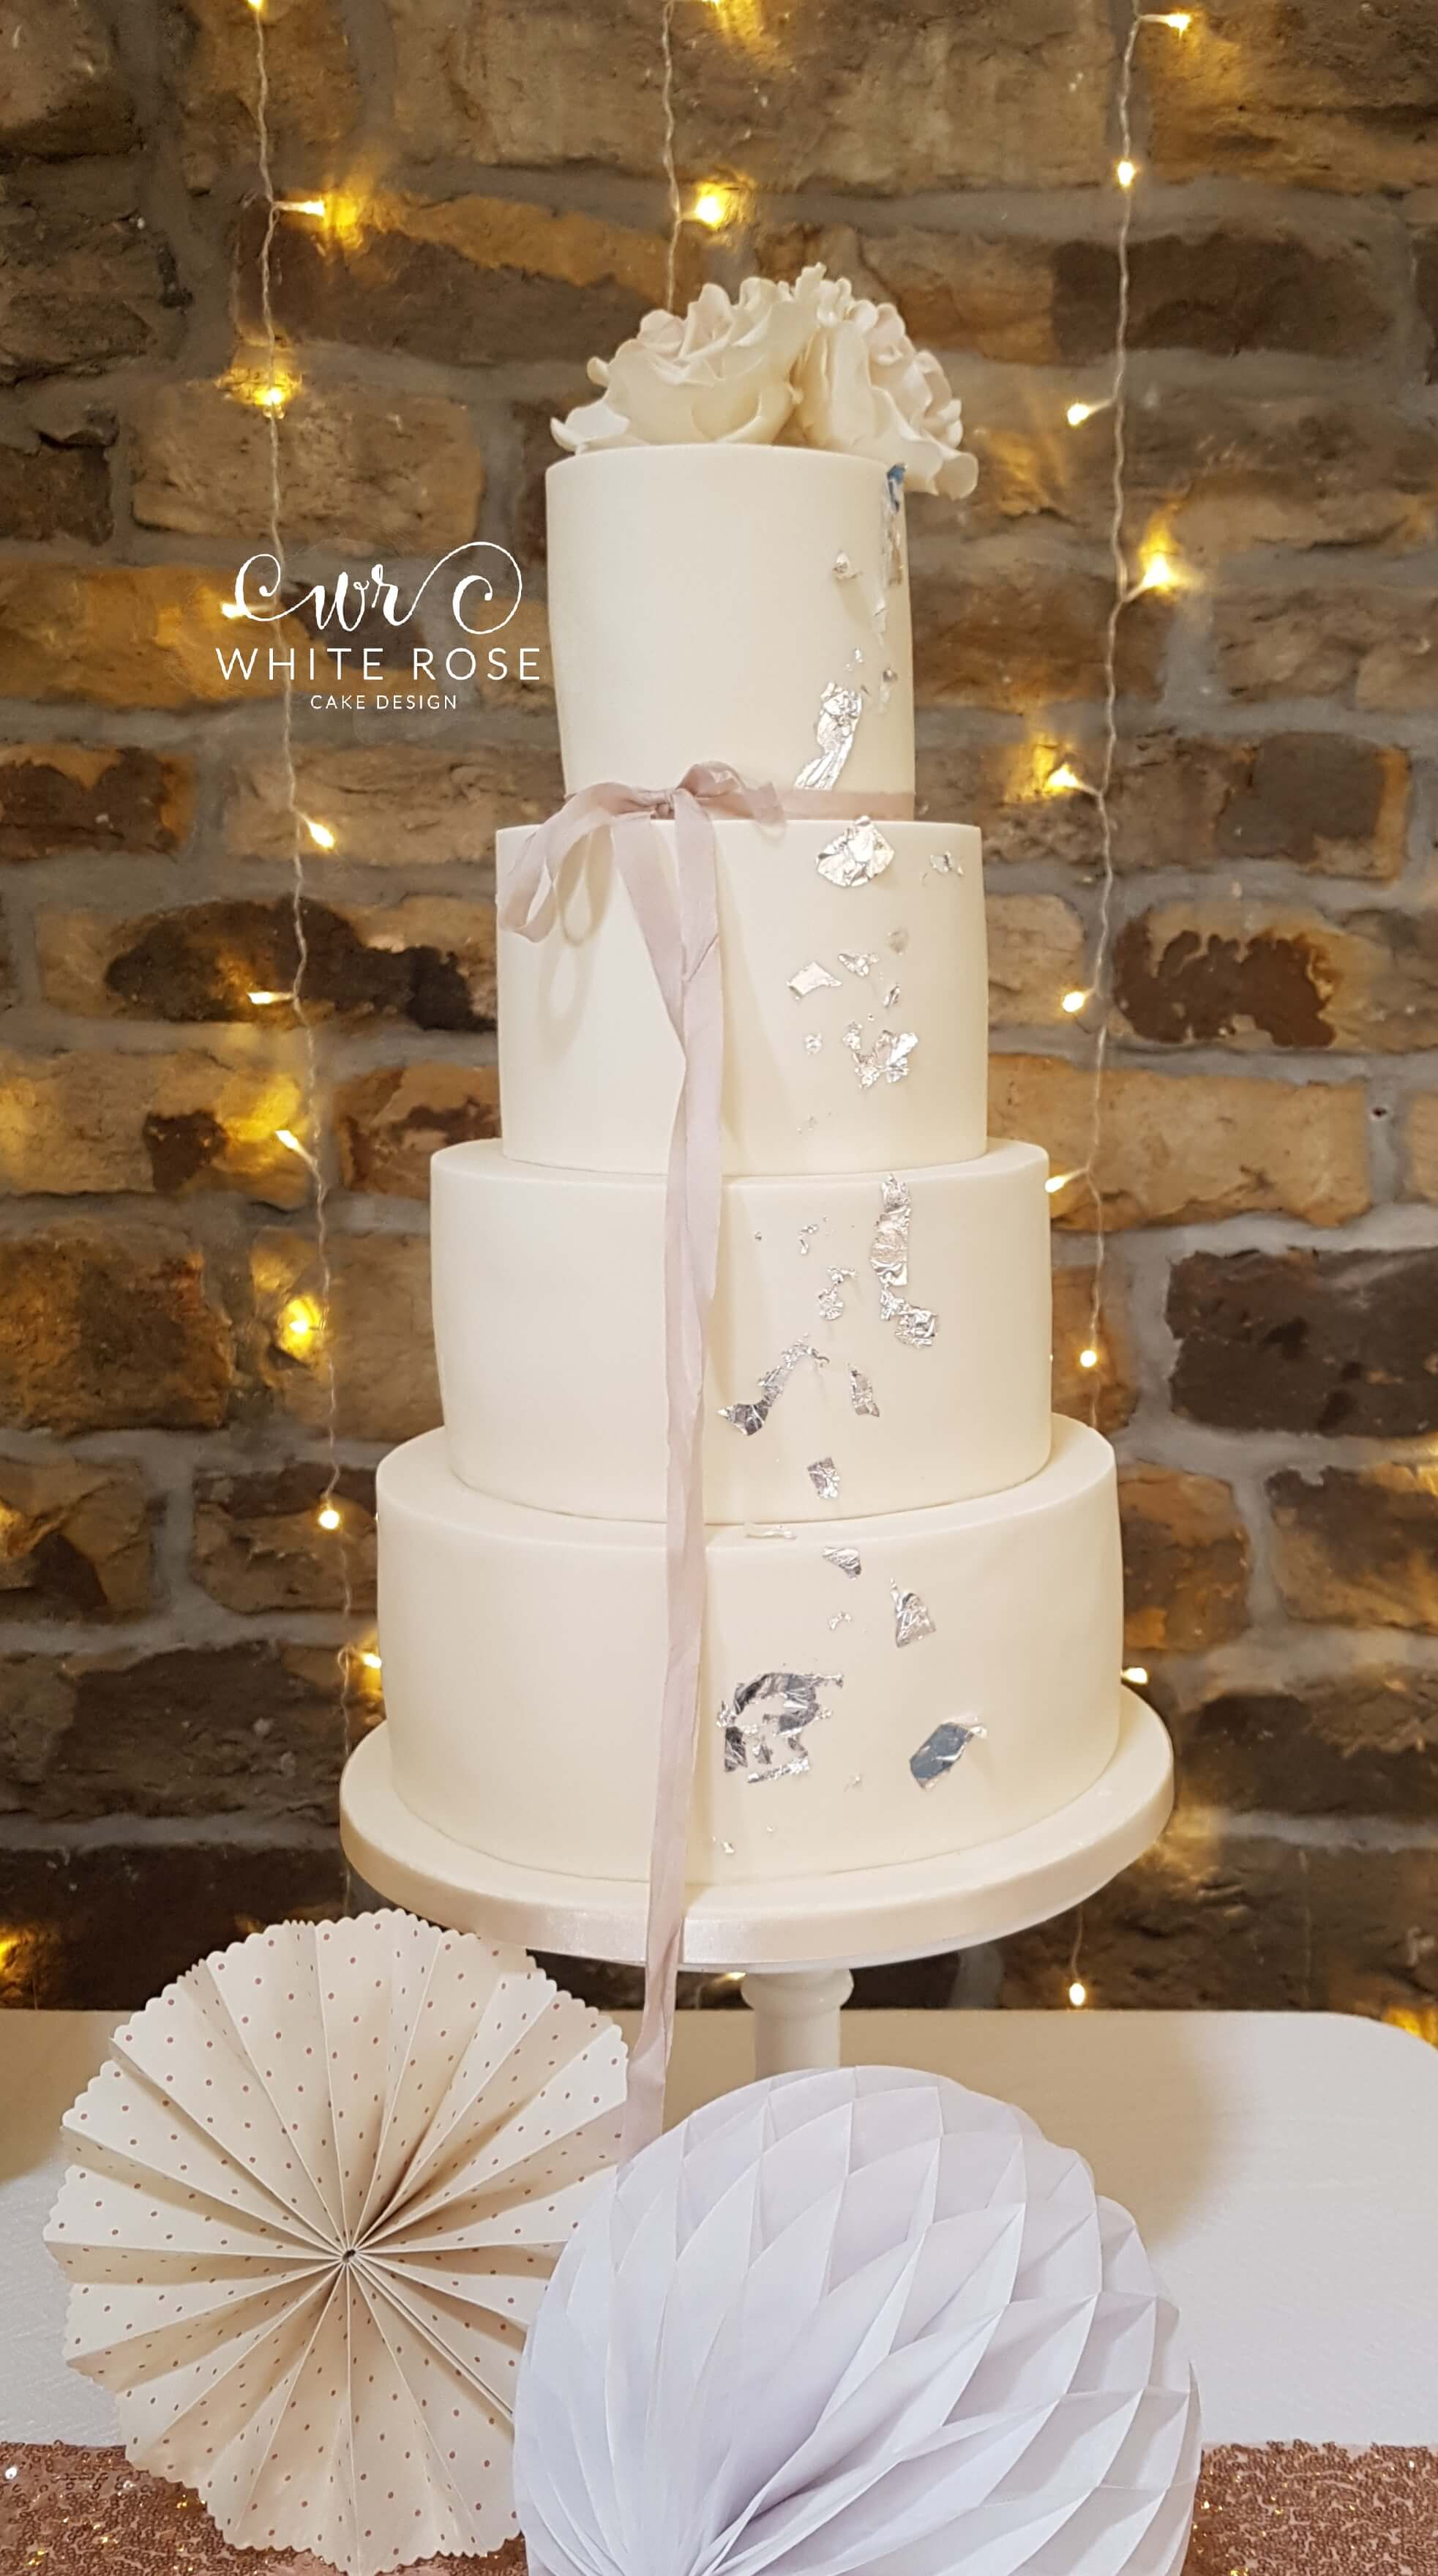 Simple Four Tier Wedding Cake with Silk Ribbon and Silver Leaf White Rose Cake Design